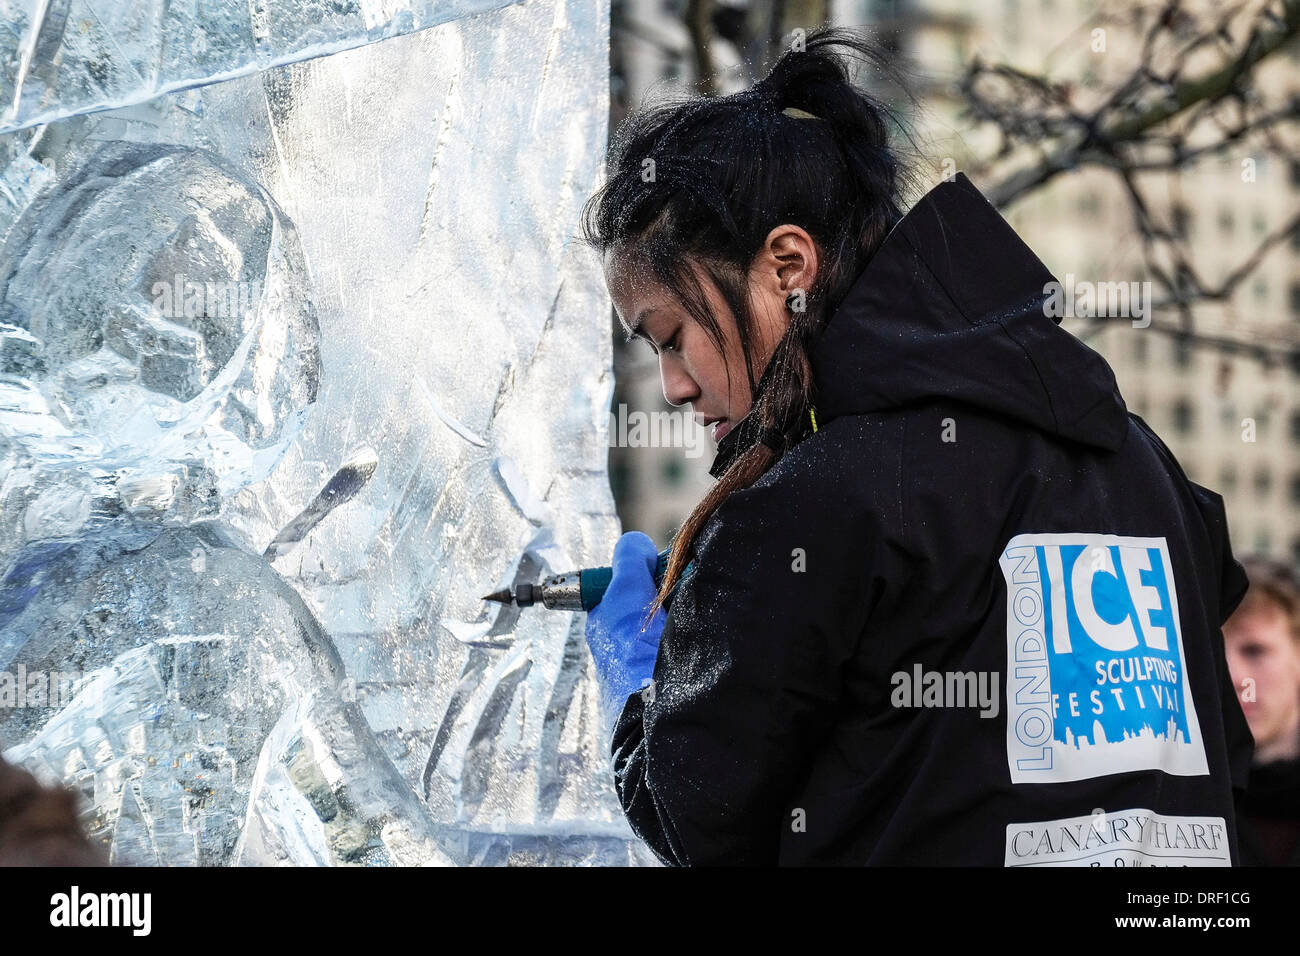 A member of the British team working to create their sculpture as part of the London Ice Sculpture Festival 2014. - Stock Image